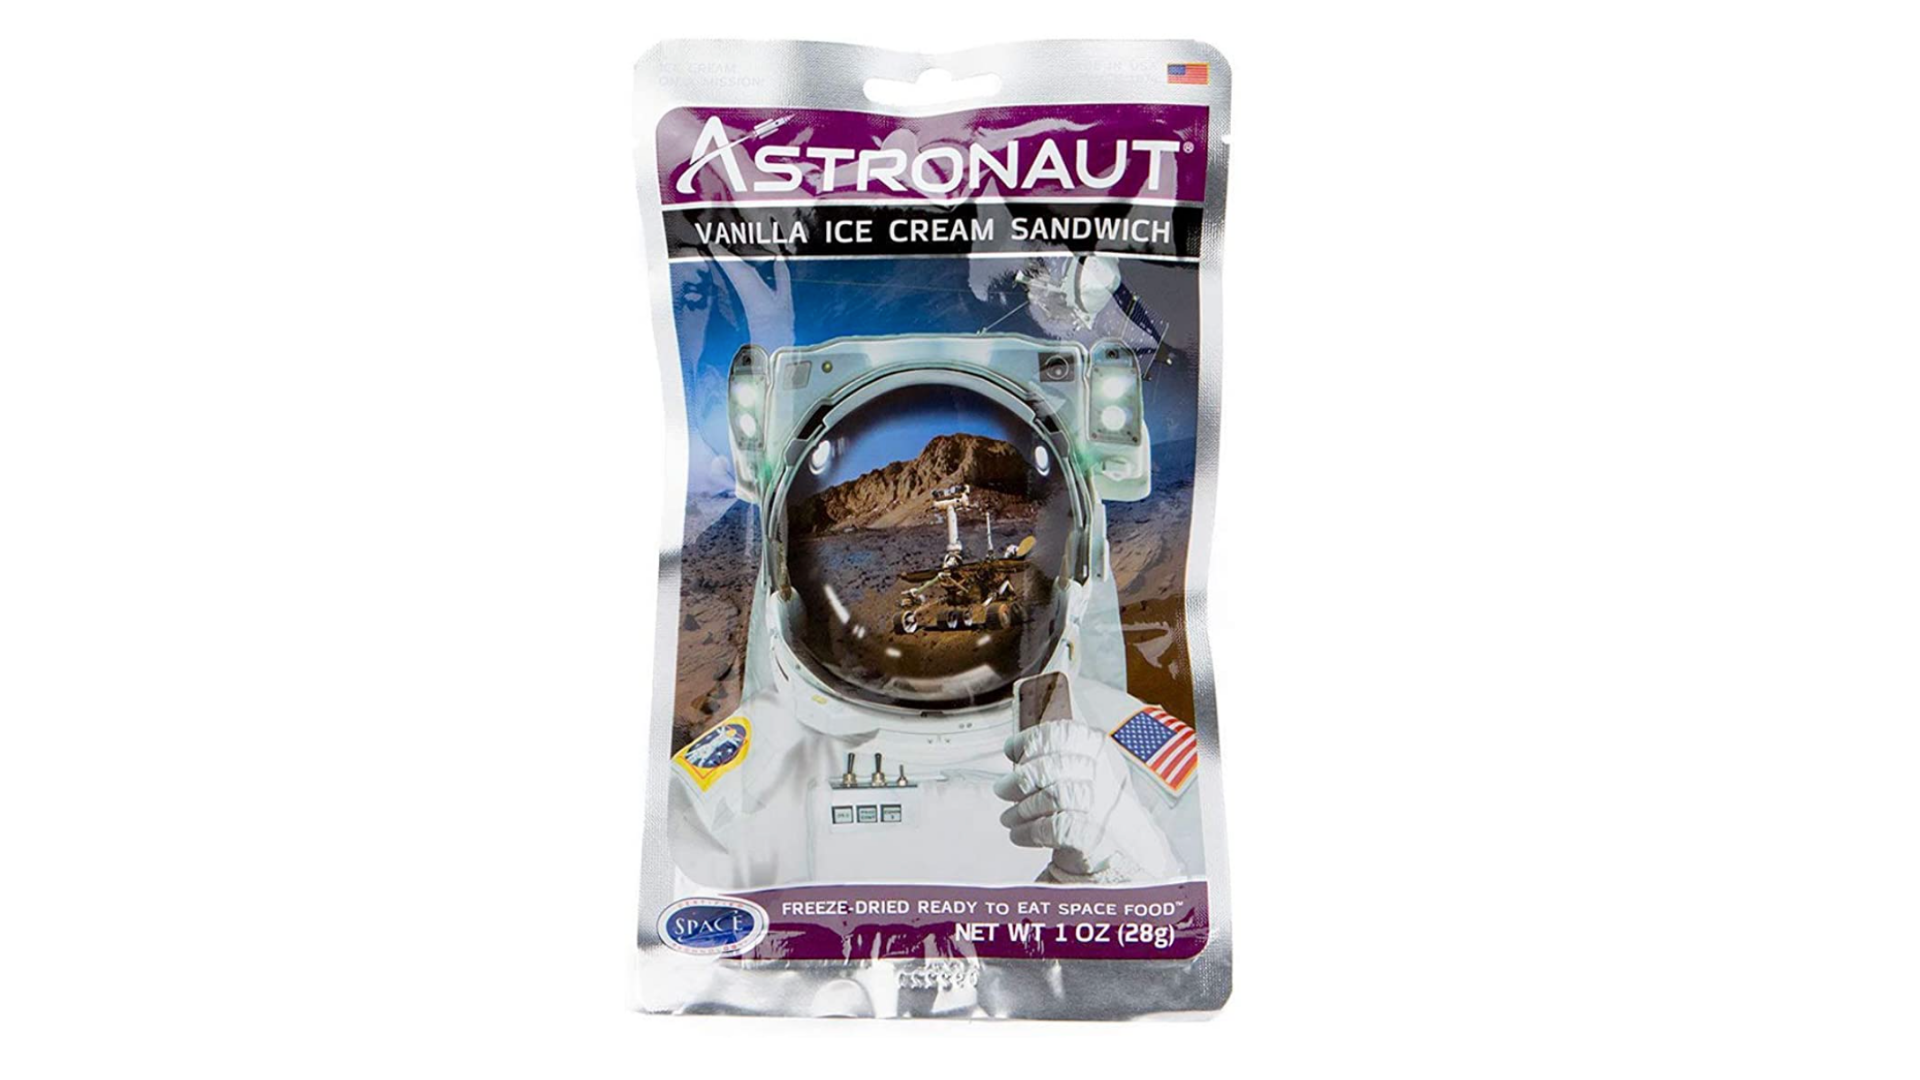 5 out-of-this-world products to channel your inner space nerd